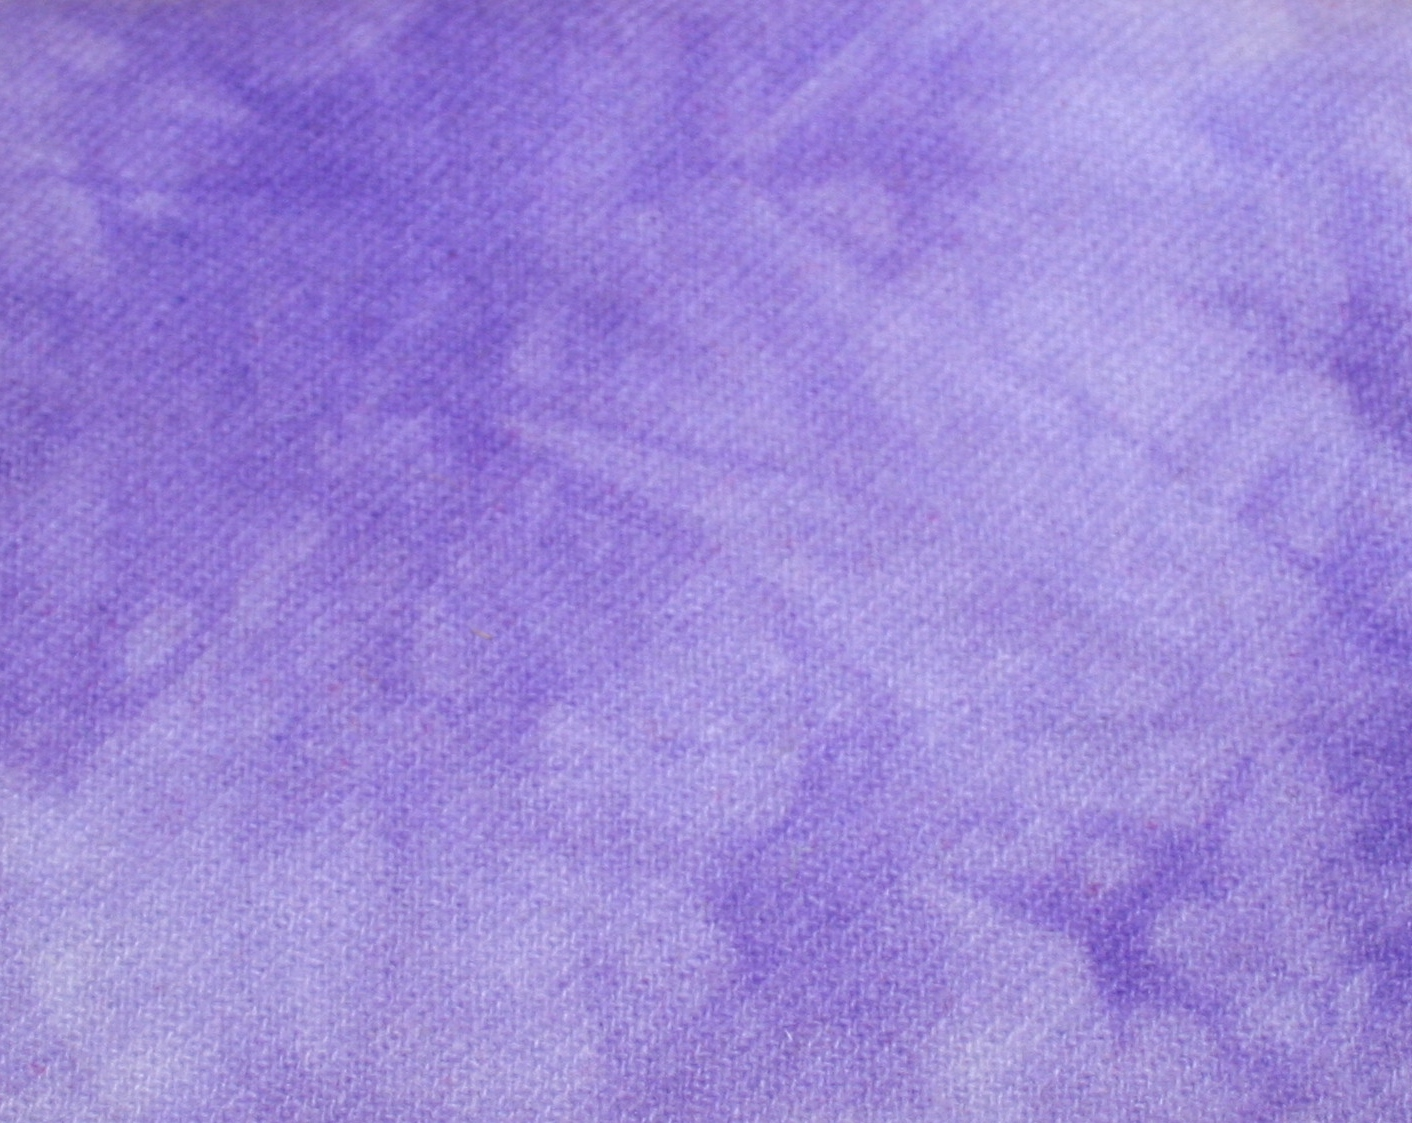 Lilac Hand Dyed 100% Wool Part of the Vineyard Collection